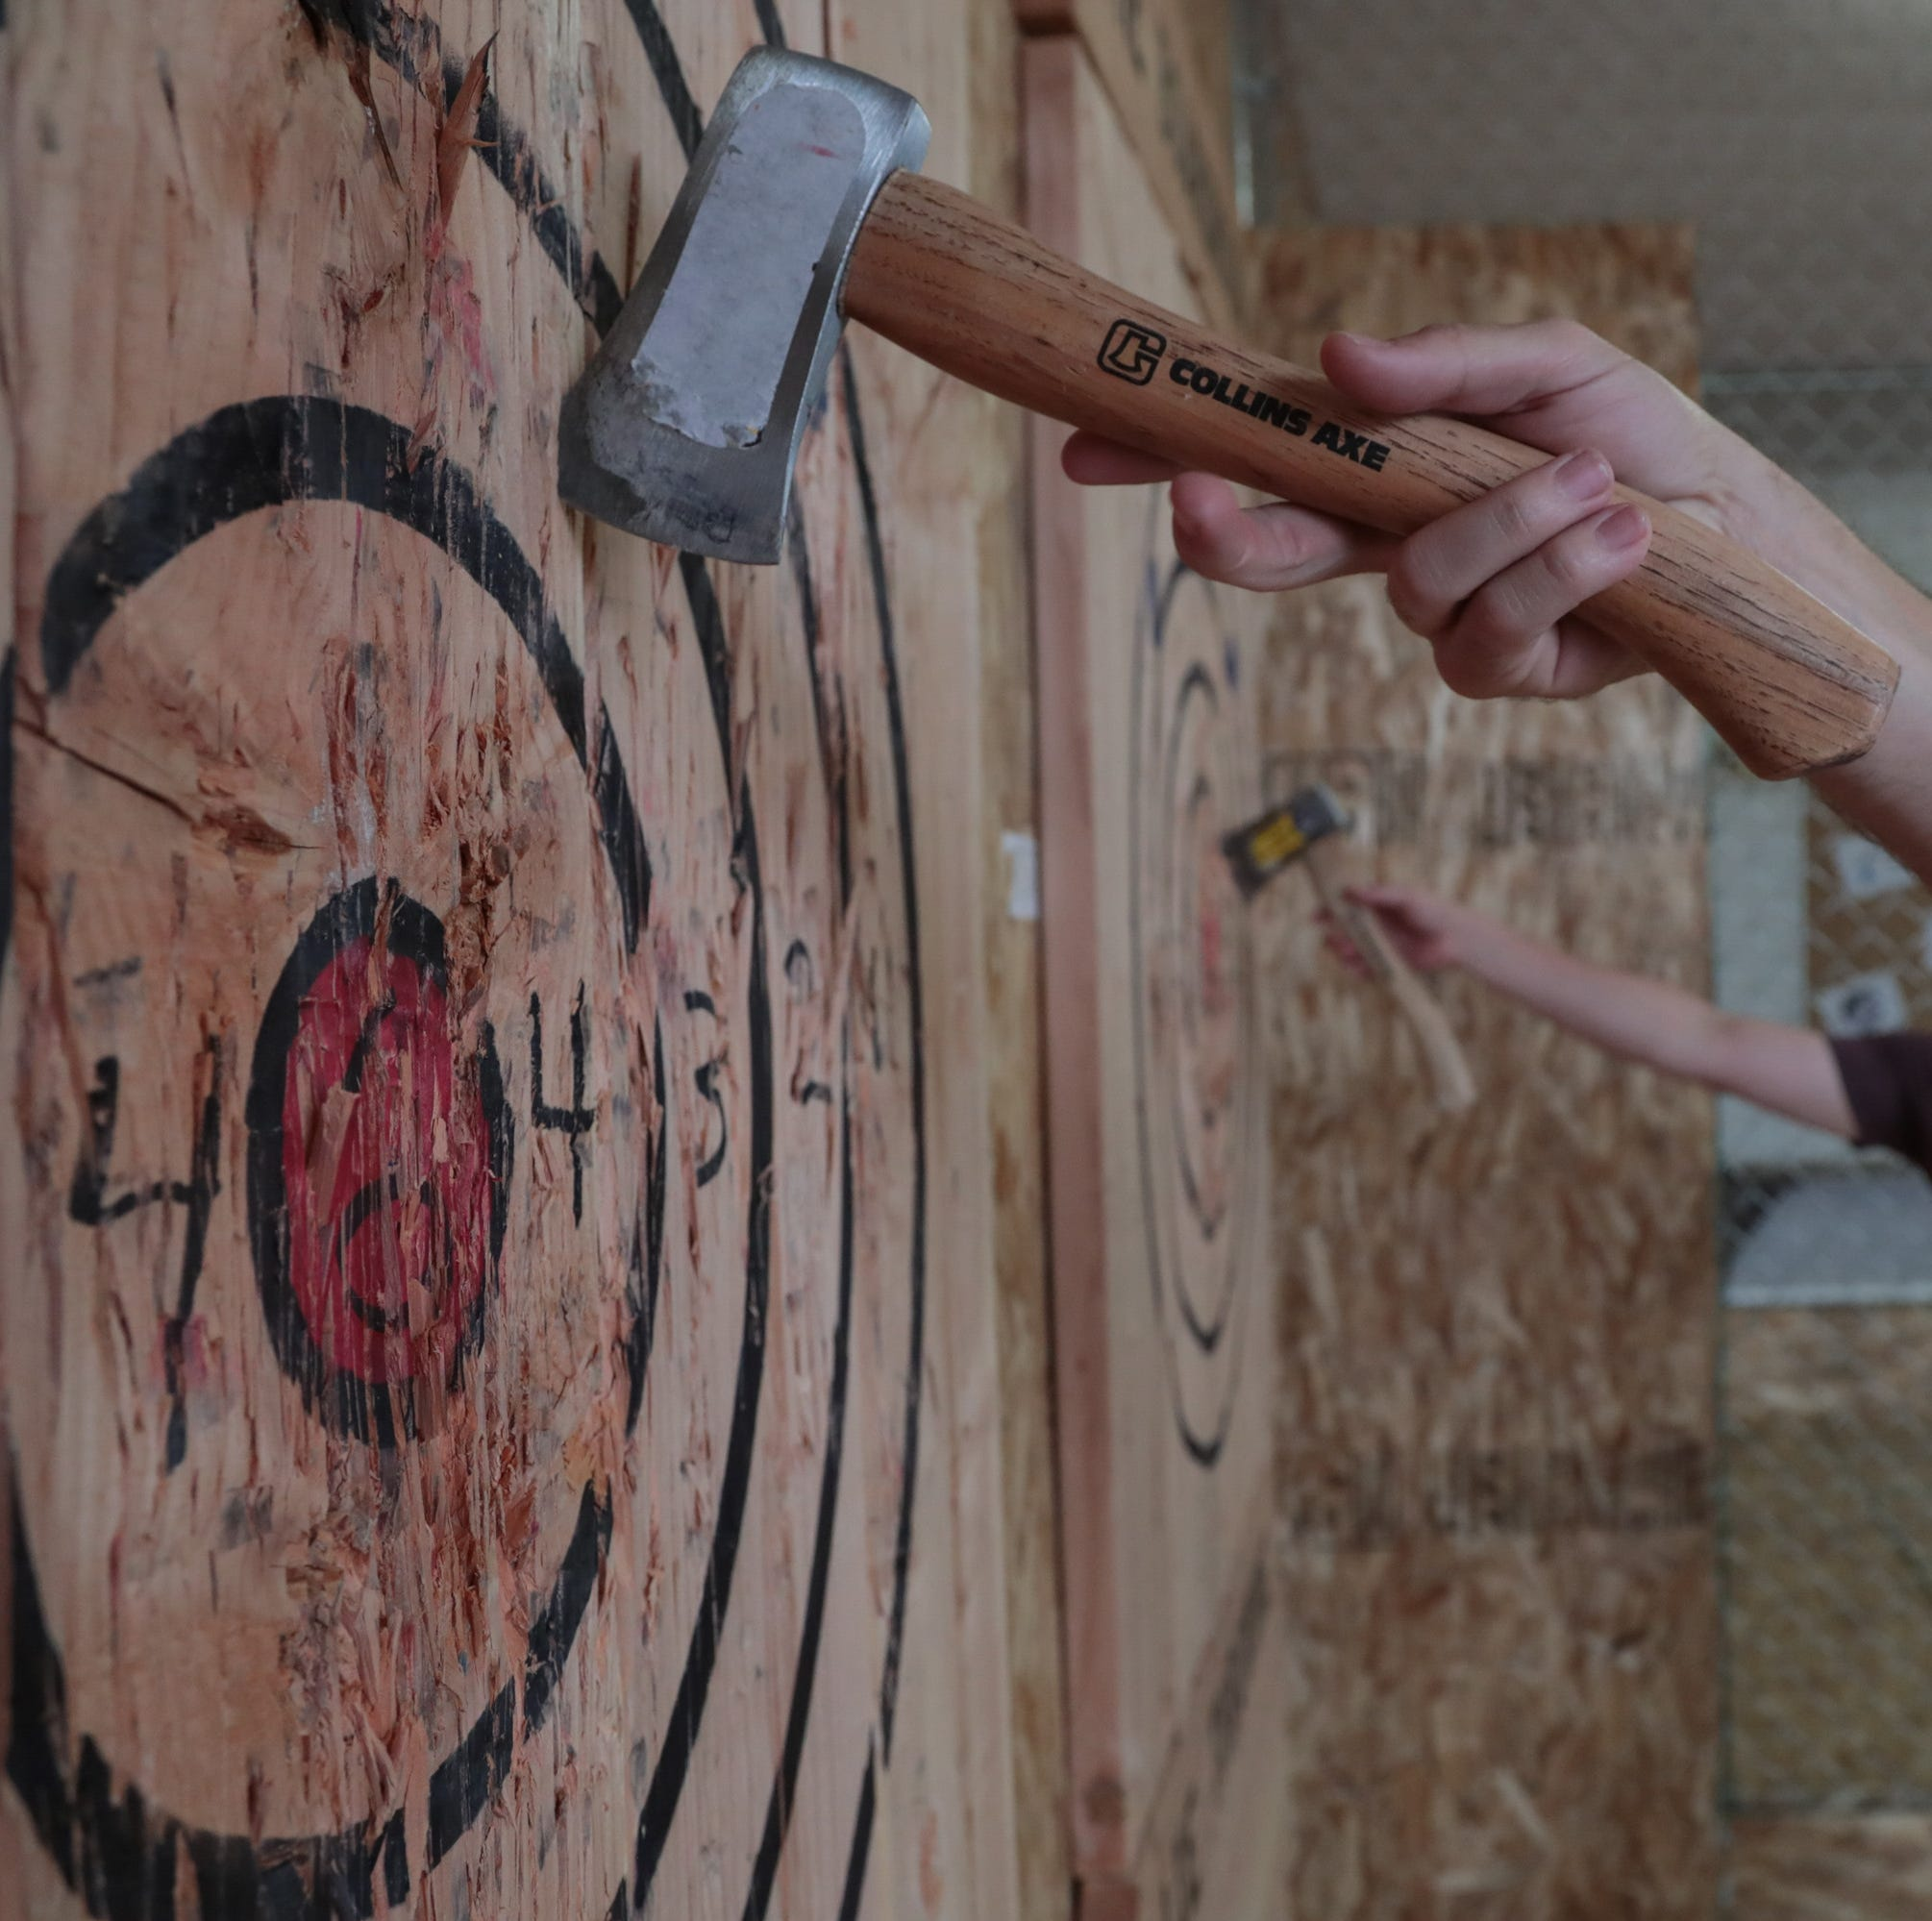 They've been axed: Twentynine Palms couple opens ax-throwing shop near Joshua Tree National Park